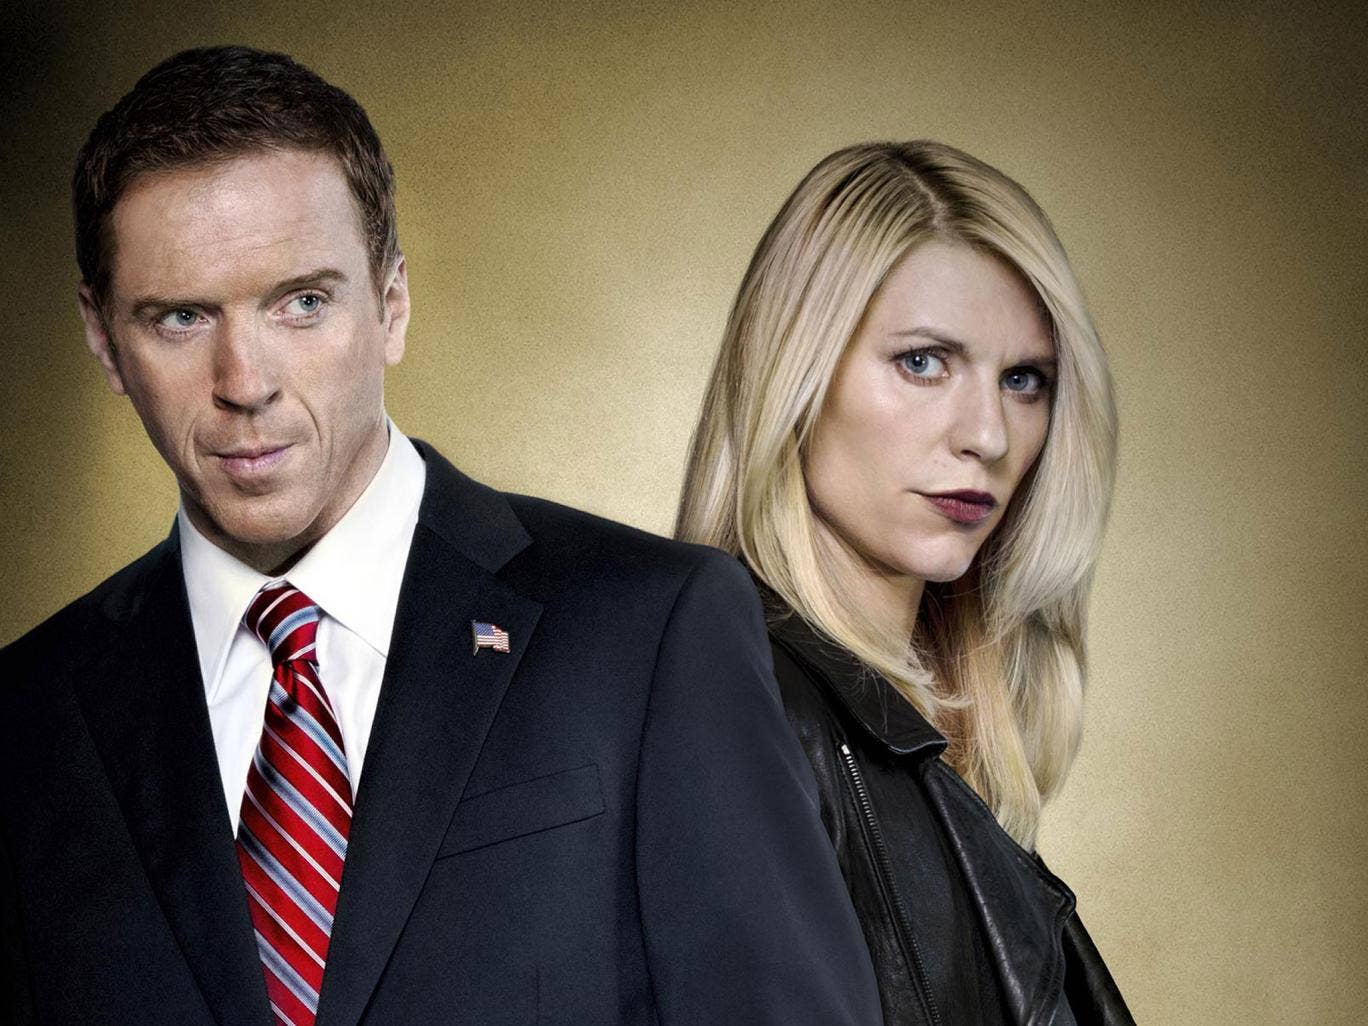 Spies like us: Claire Danes and Damian Lewis as Carrie and Brody in Homeland